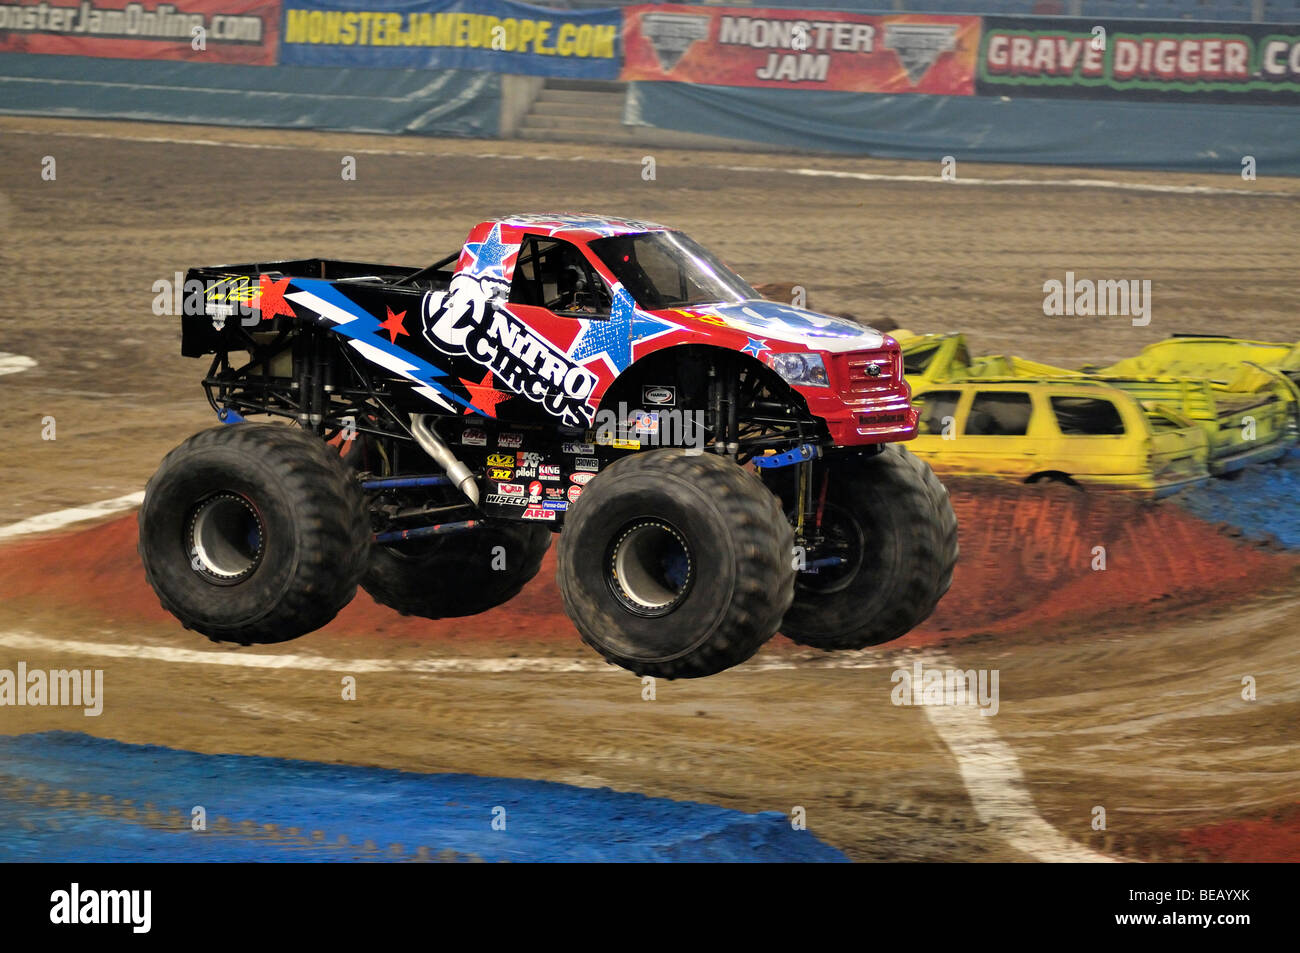 Monster jam nitro circus with lee o donnell driver stock image